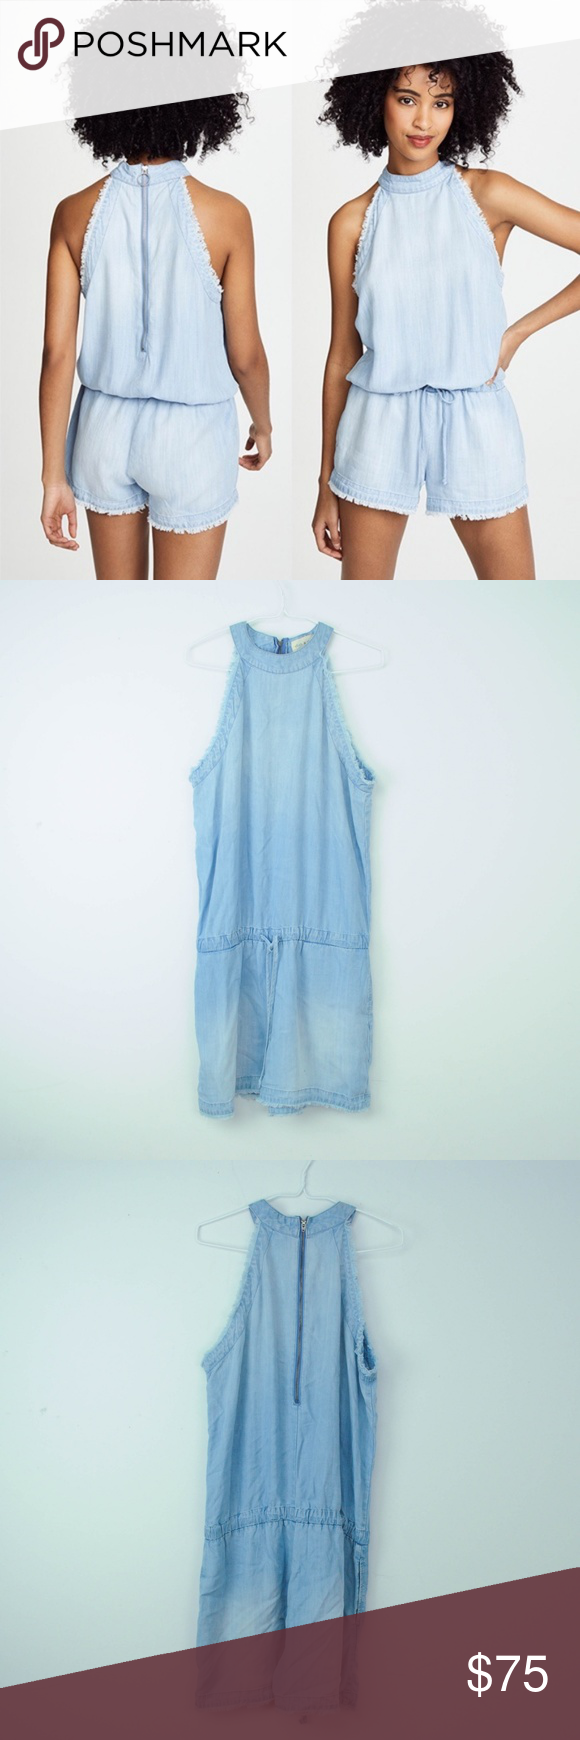 8a812b2b512 NEW Cloth   Stone Anthropologie Denim Romper Fray NEW  198 Cloth   Stone  Anthropologie Romper Sz L Denim Frayed High Neck Blue L17 Description - new  without ...